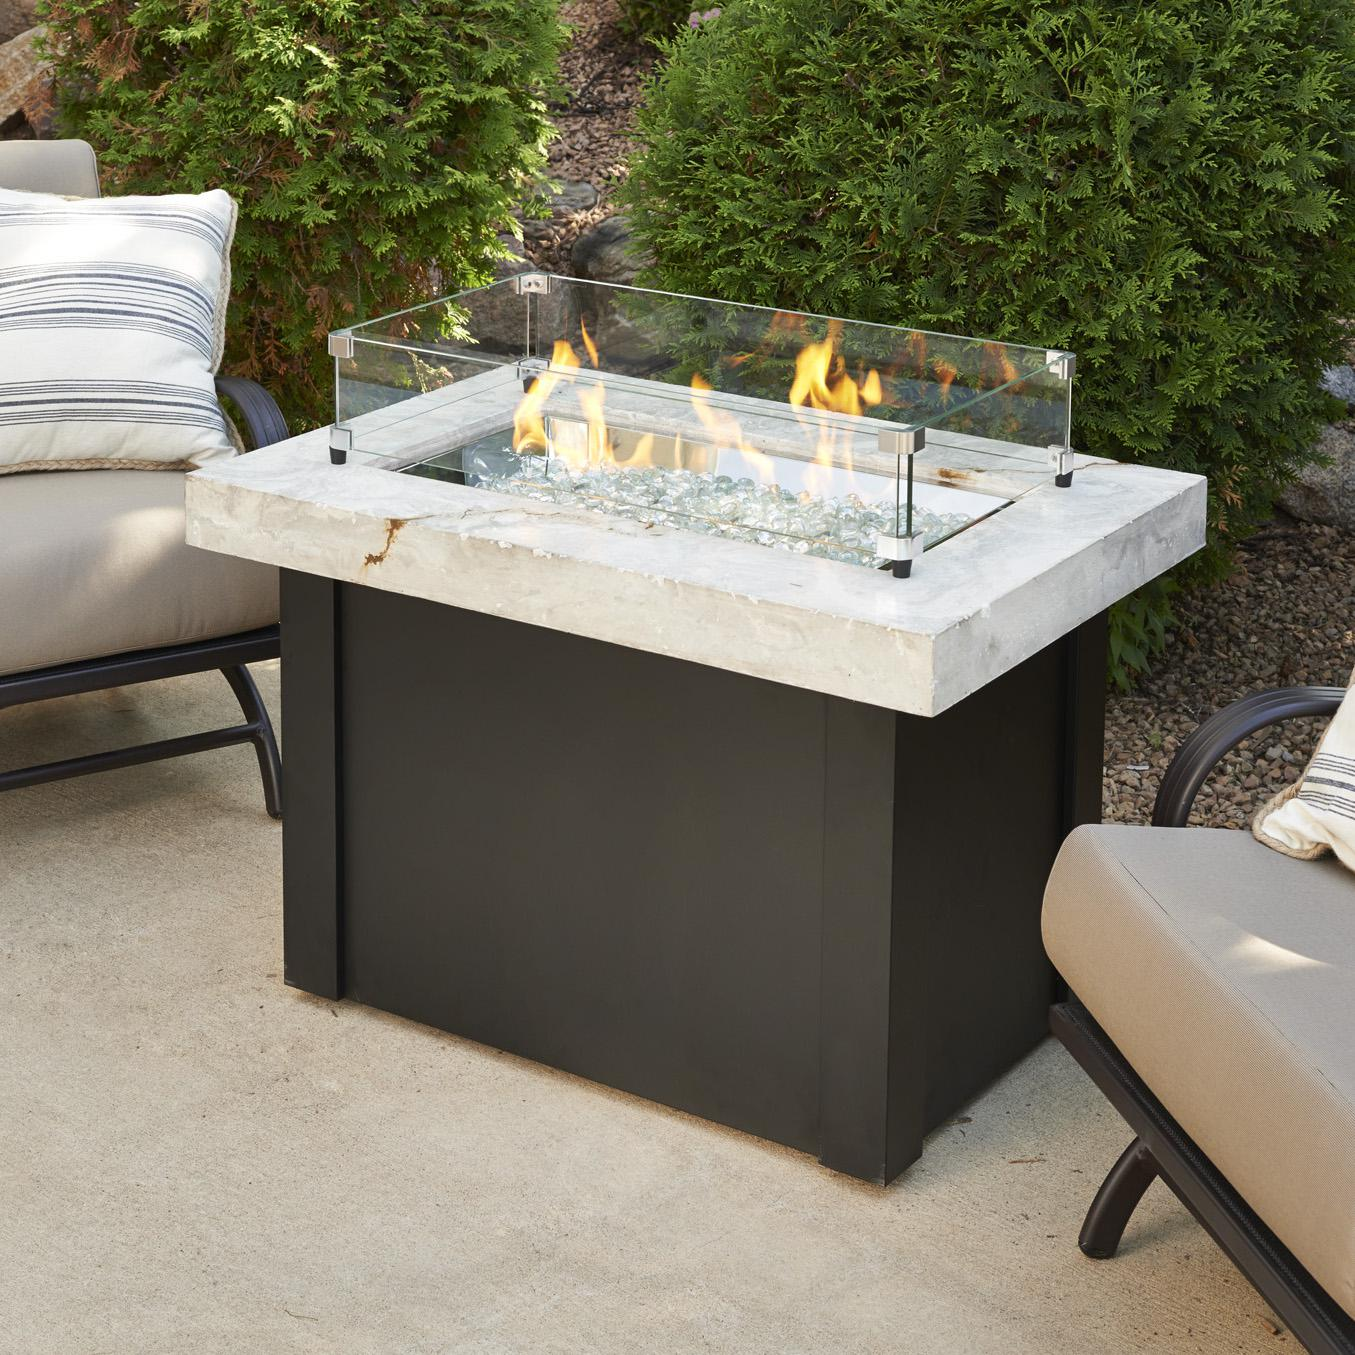 The Outdoor Greatroom Company Providence 32 Inch Rectangular Natural Gas Fire Pit Table With 24 Inch Crystal Fire Burner White Ships As Propane With Convers Fire Pit Table Fire Pit Table